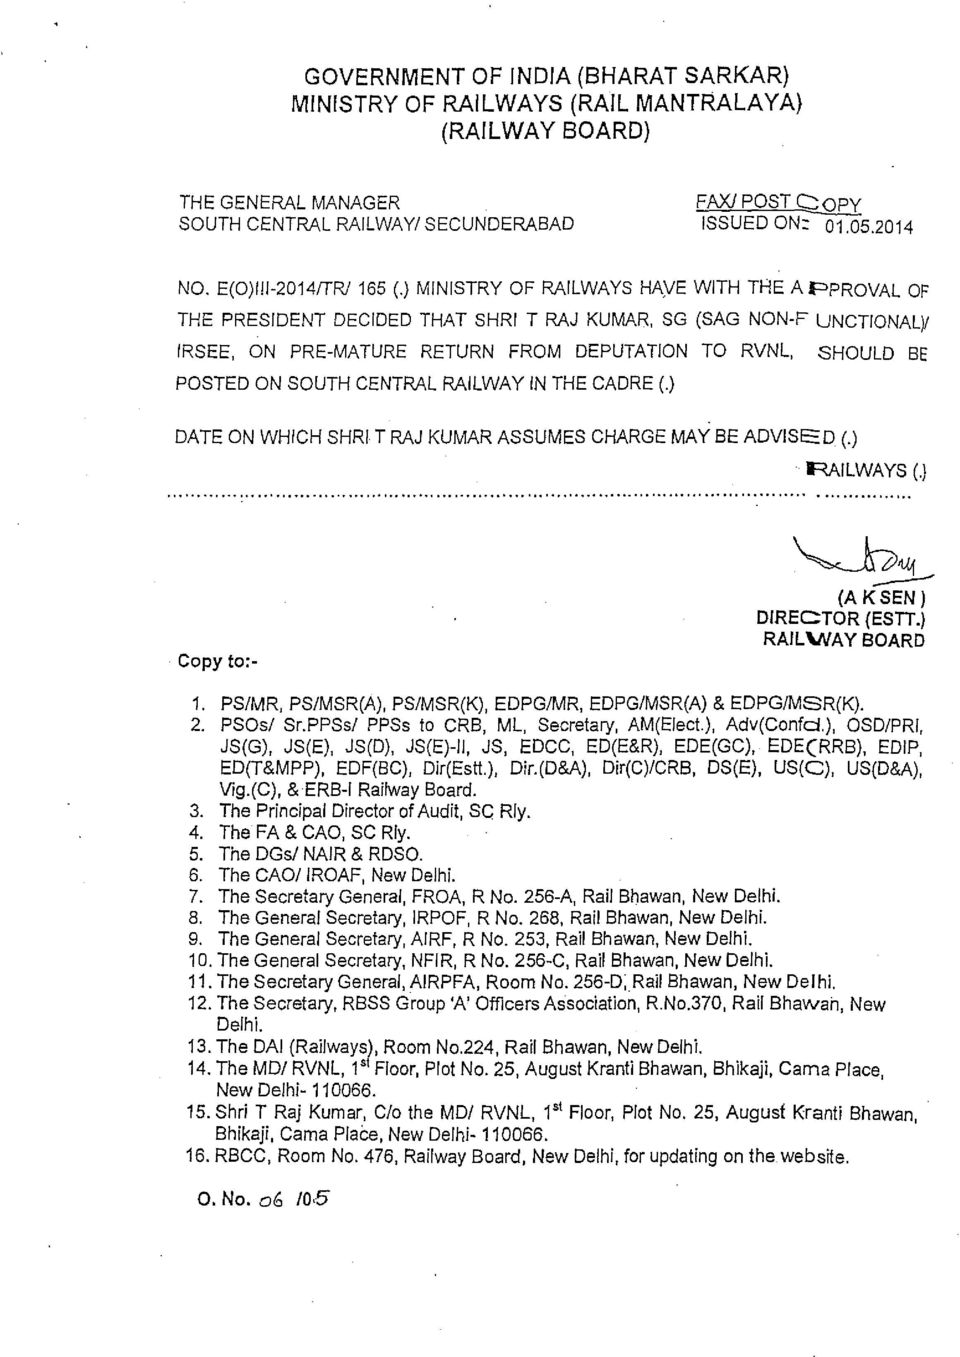 CENTRAL RAILWAY IN THE CADRE (.) DATE ON WHICH SHRI T RAJ KUMAR ASSUMES CHARGE MAY BE ADVISED 0 railways (.) Copy to:- 2. PSOs/ Sr.PPSs/ PPSs to CRB, ML, Secretary, AM(Elect.), Adv(Confcl.